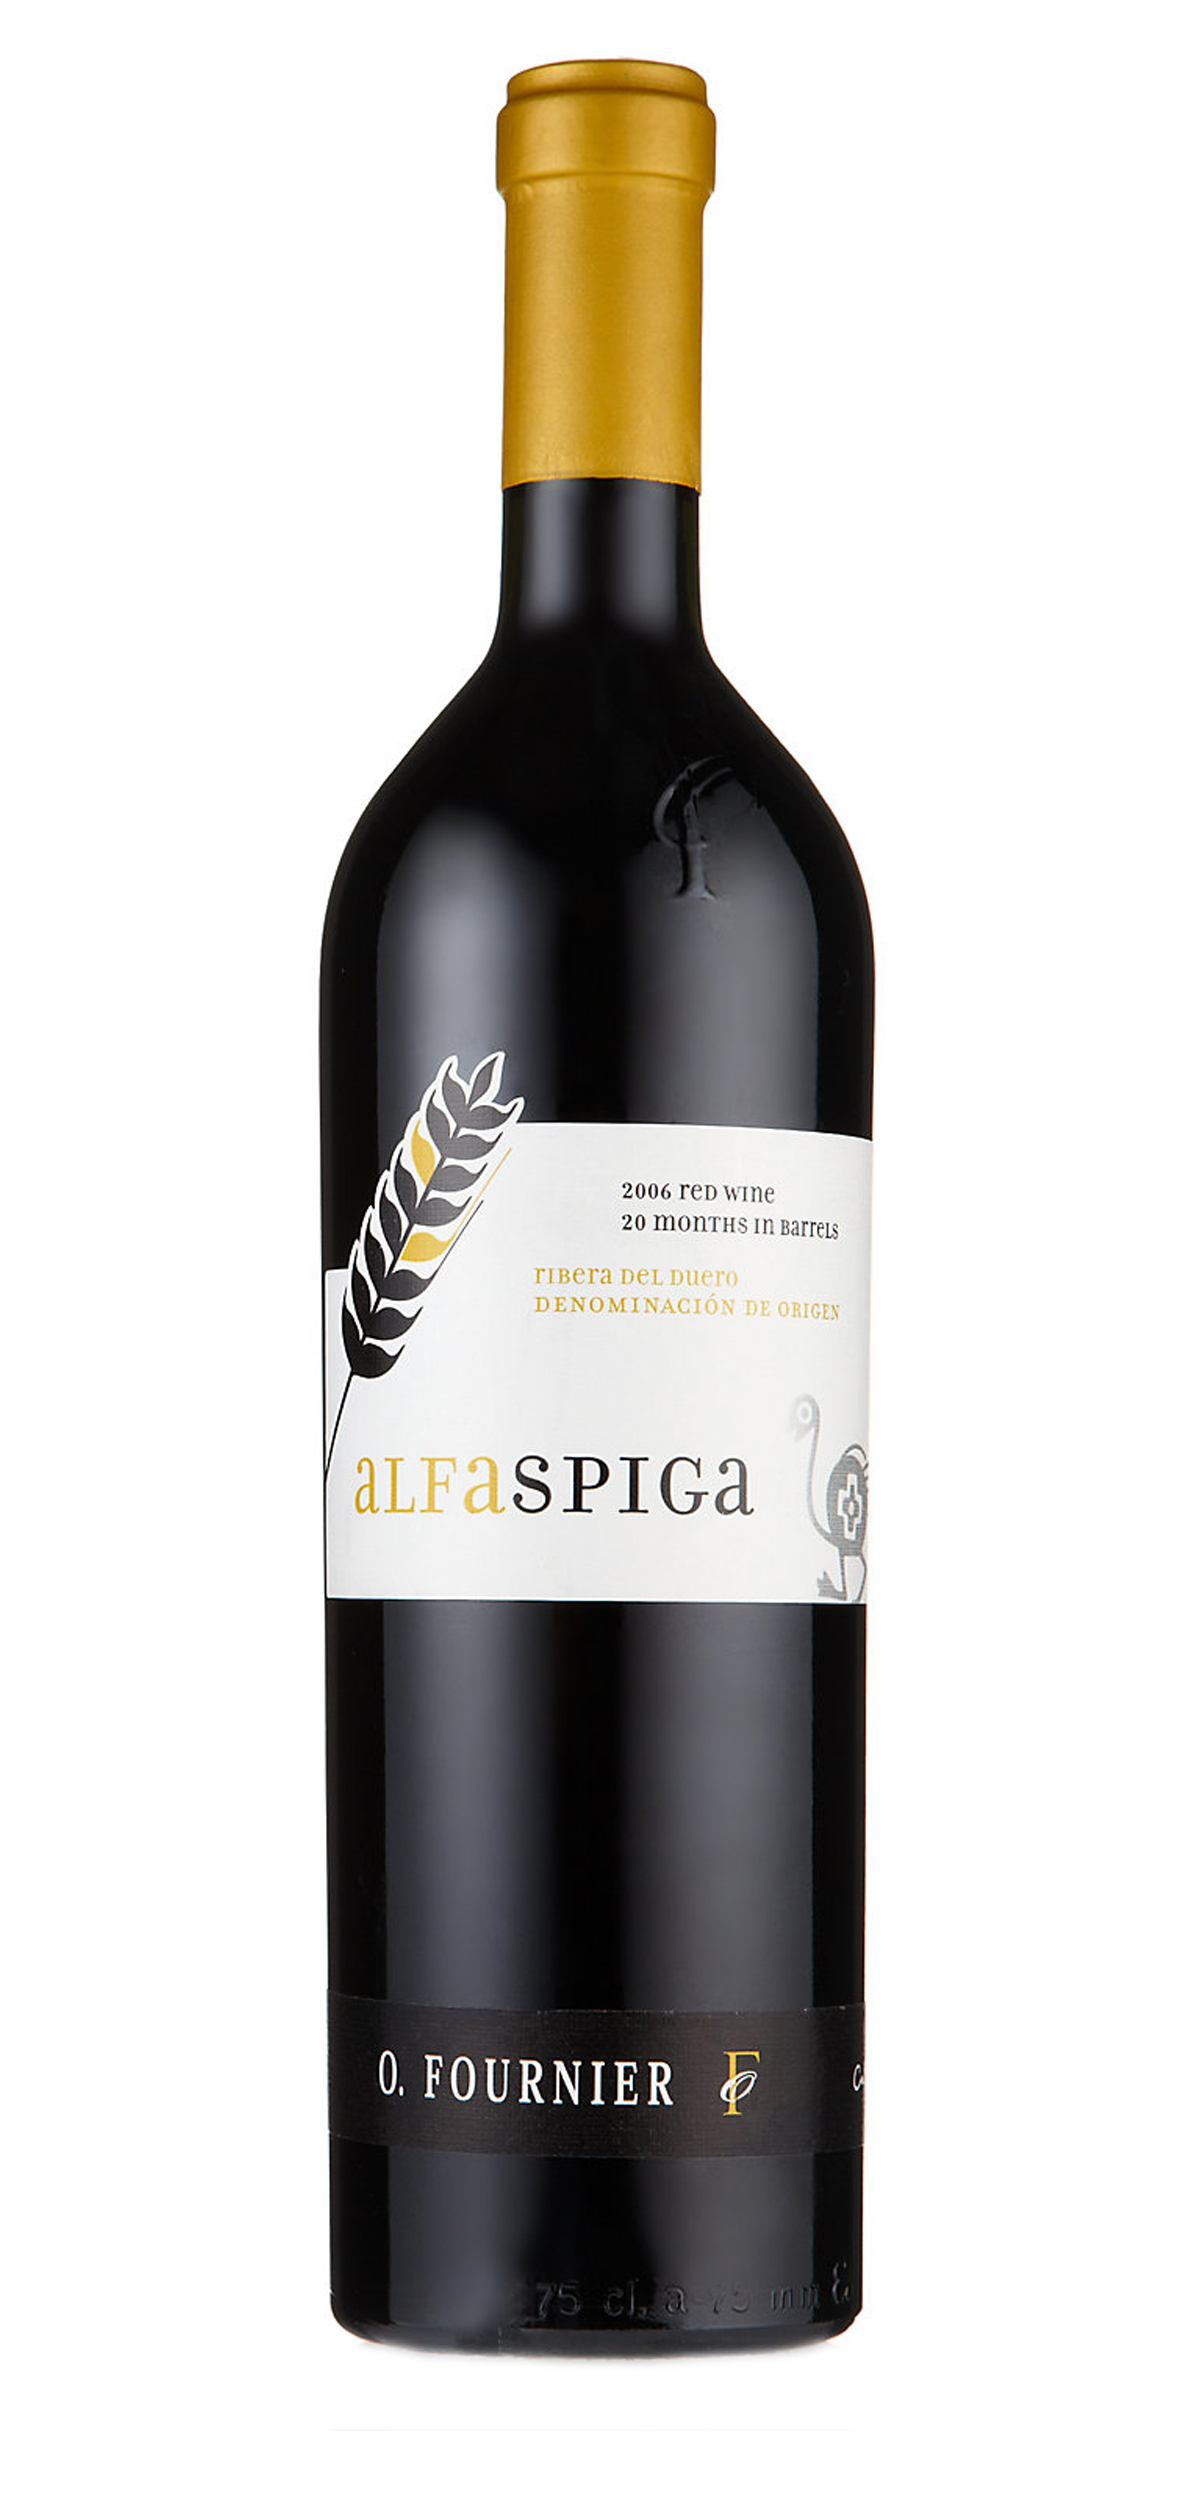 Alfa Spiga wine bottle design